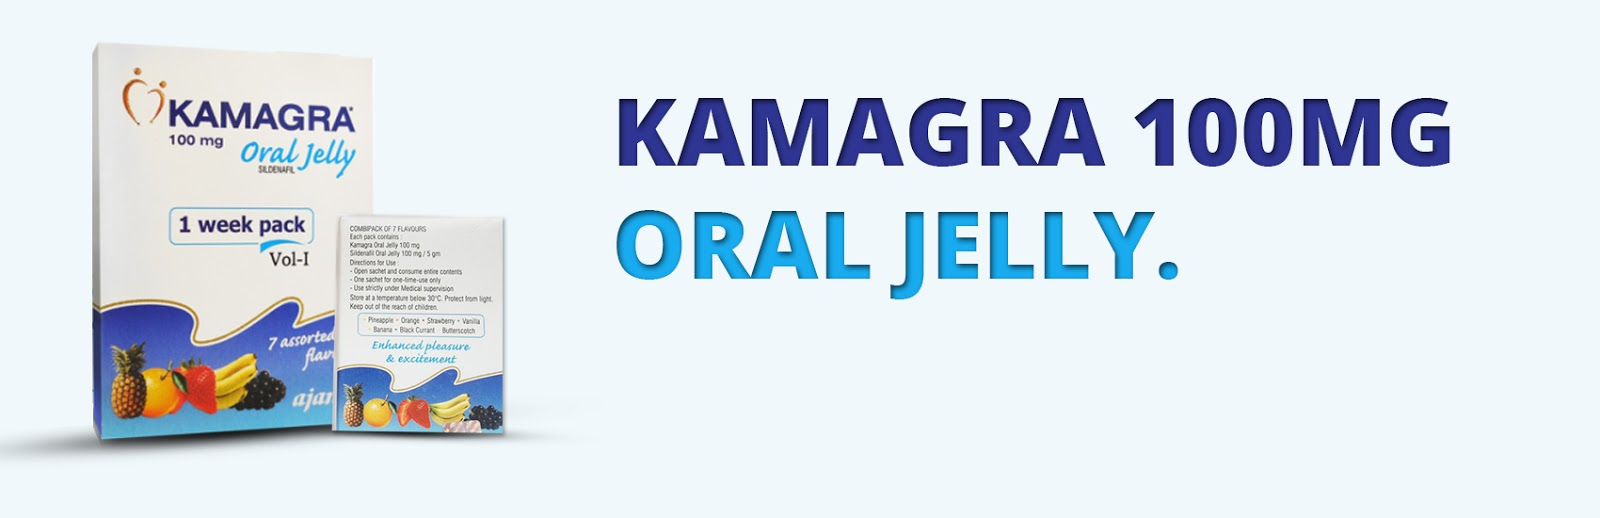 Kamagra 100mg Oral Jelly How to Use - Kamagra Seller